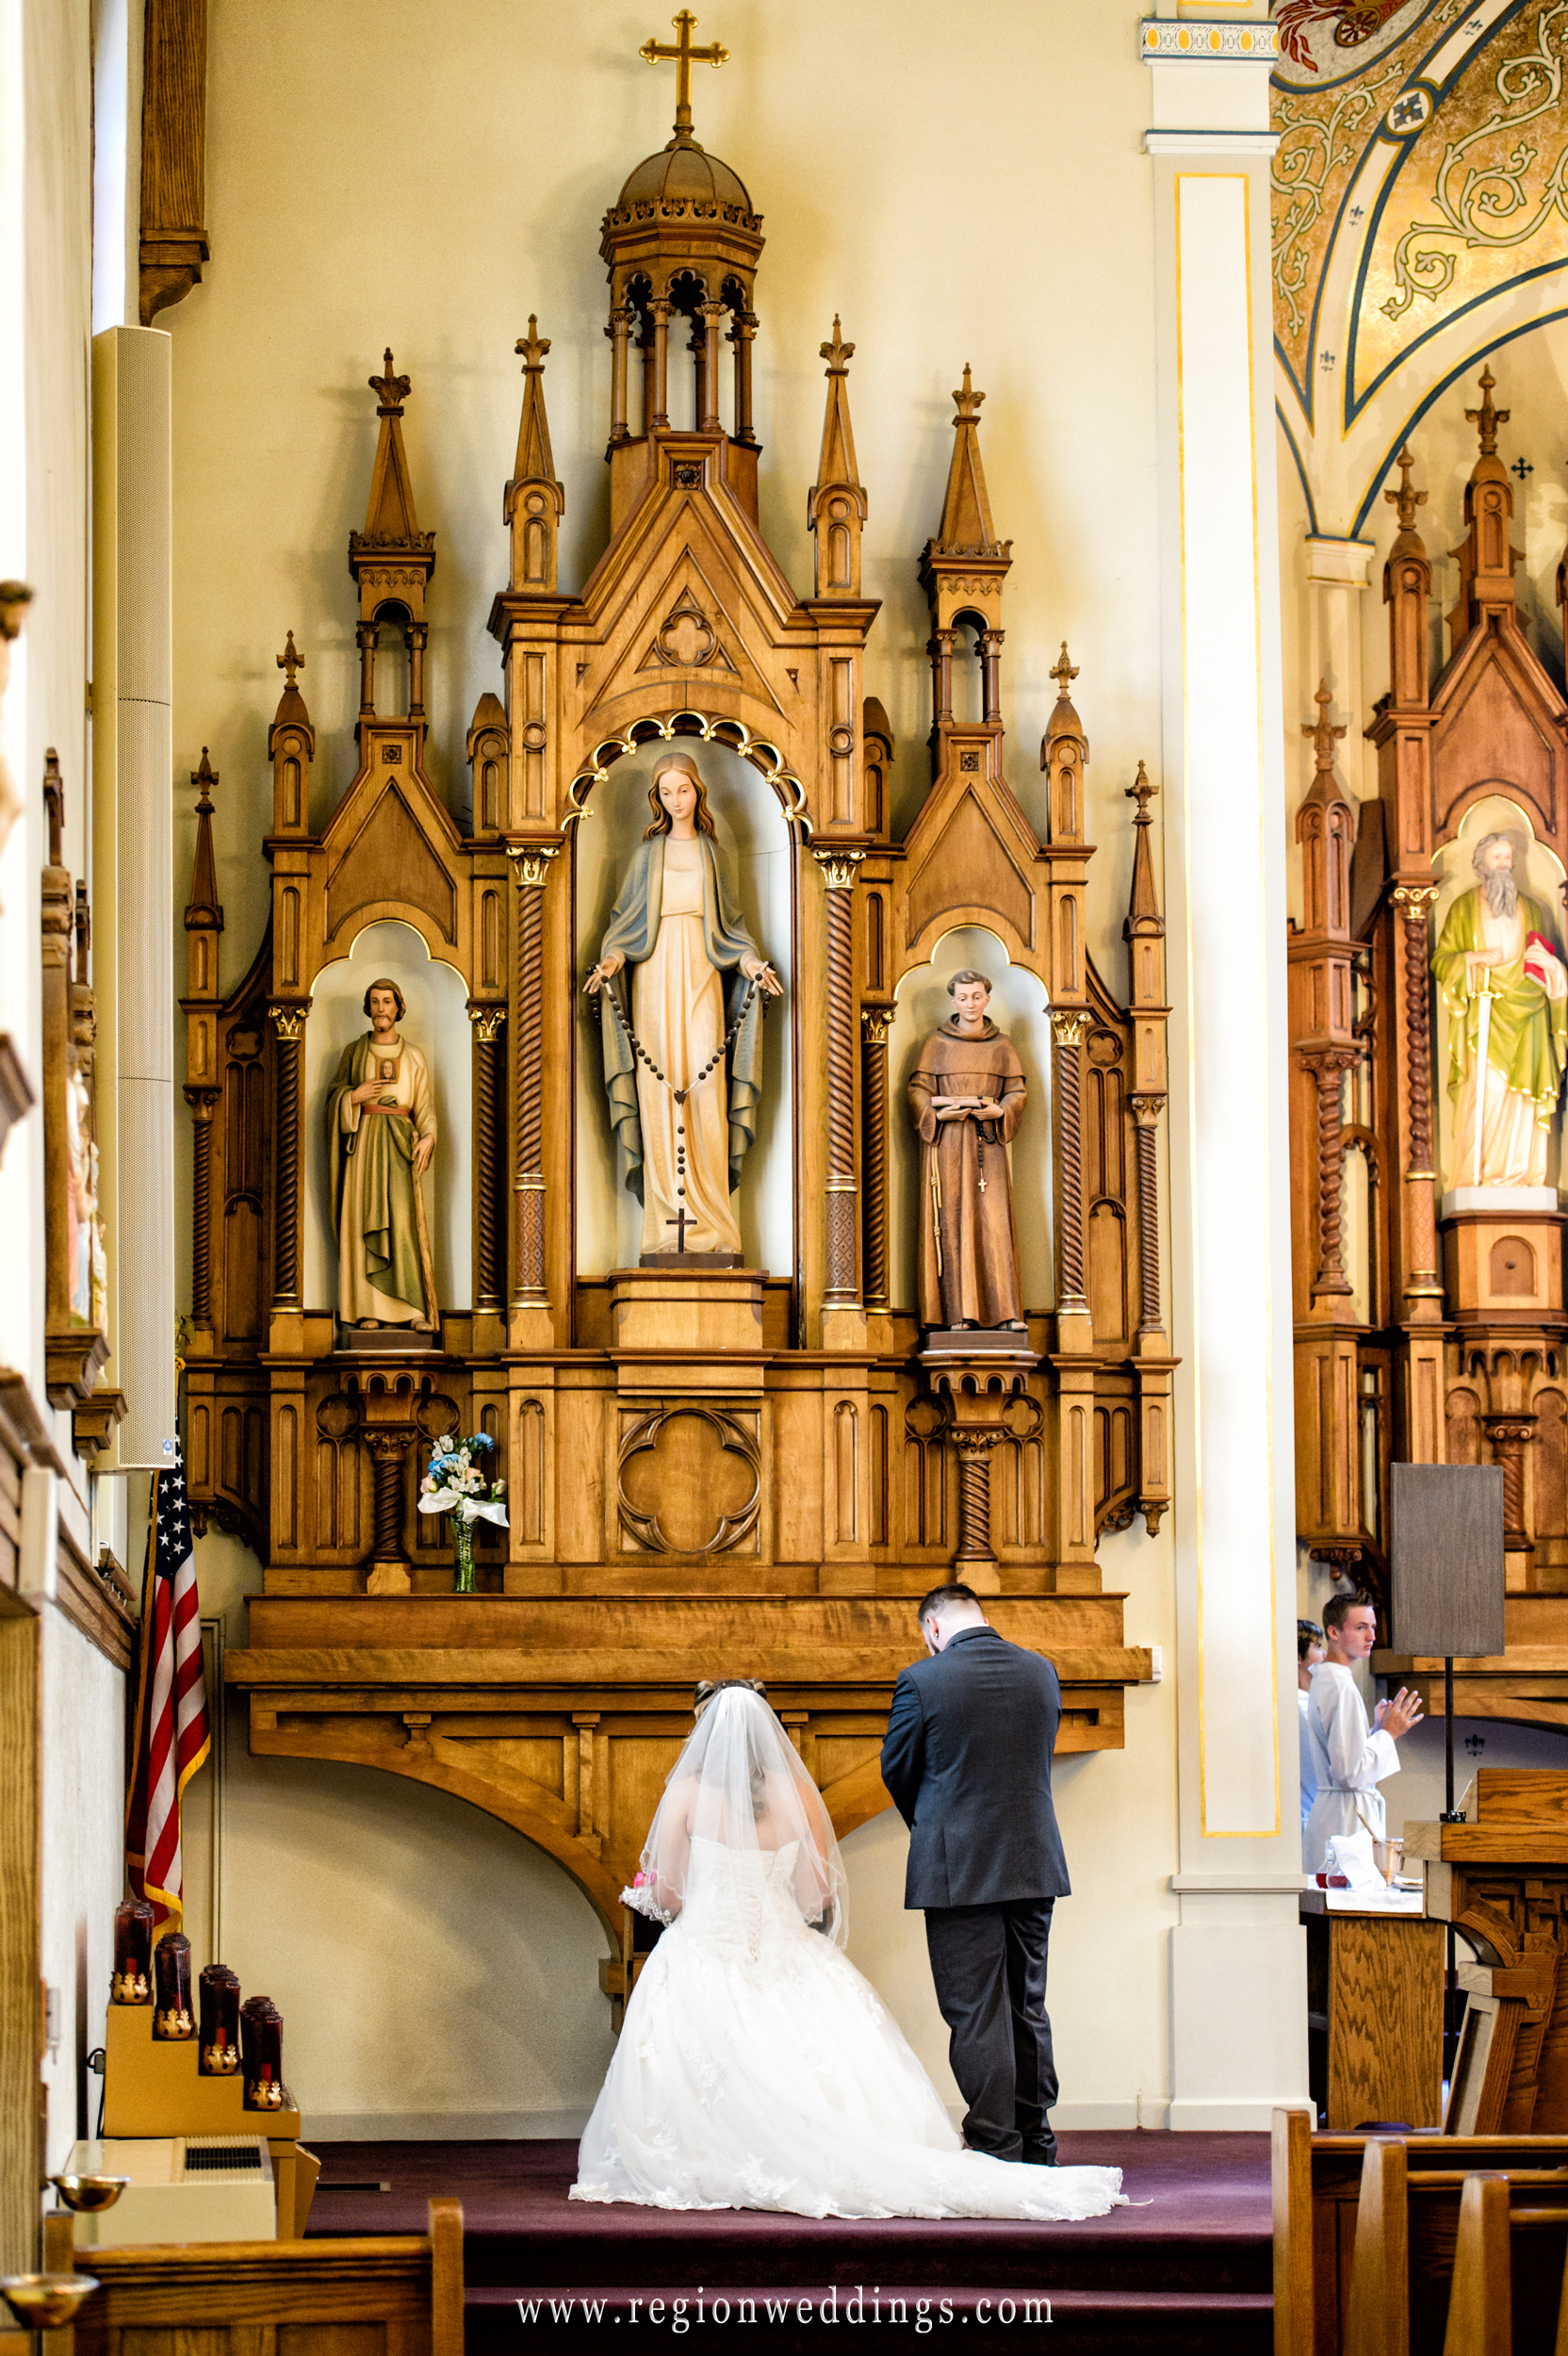 Bride and groom pray in front of the statue of Mary.